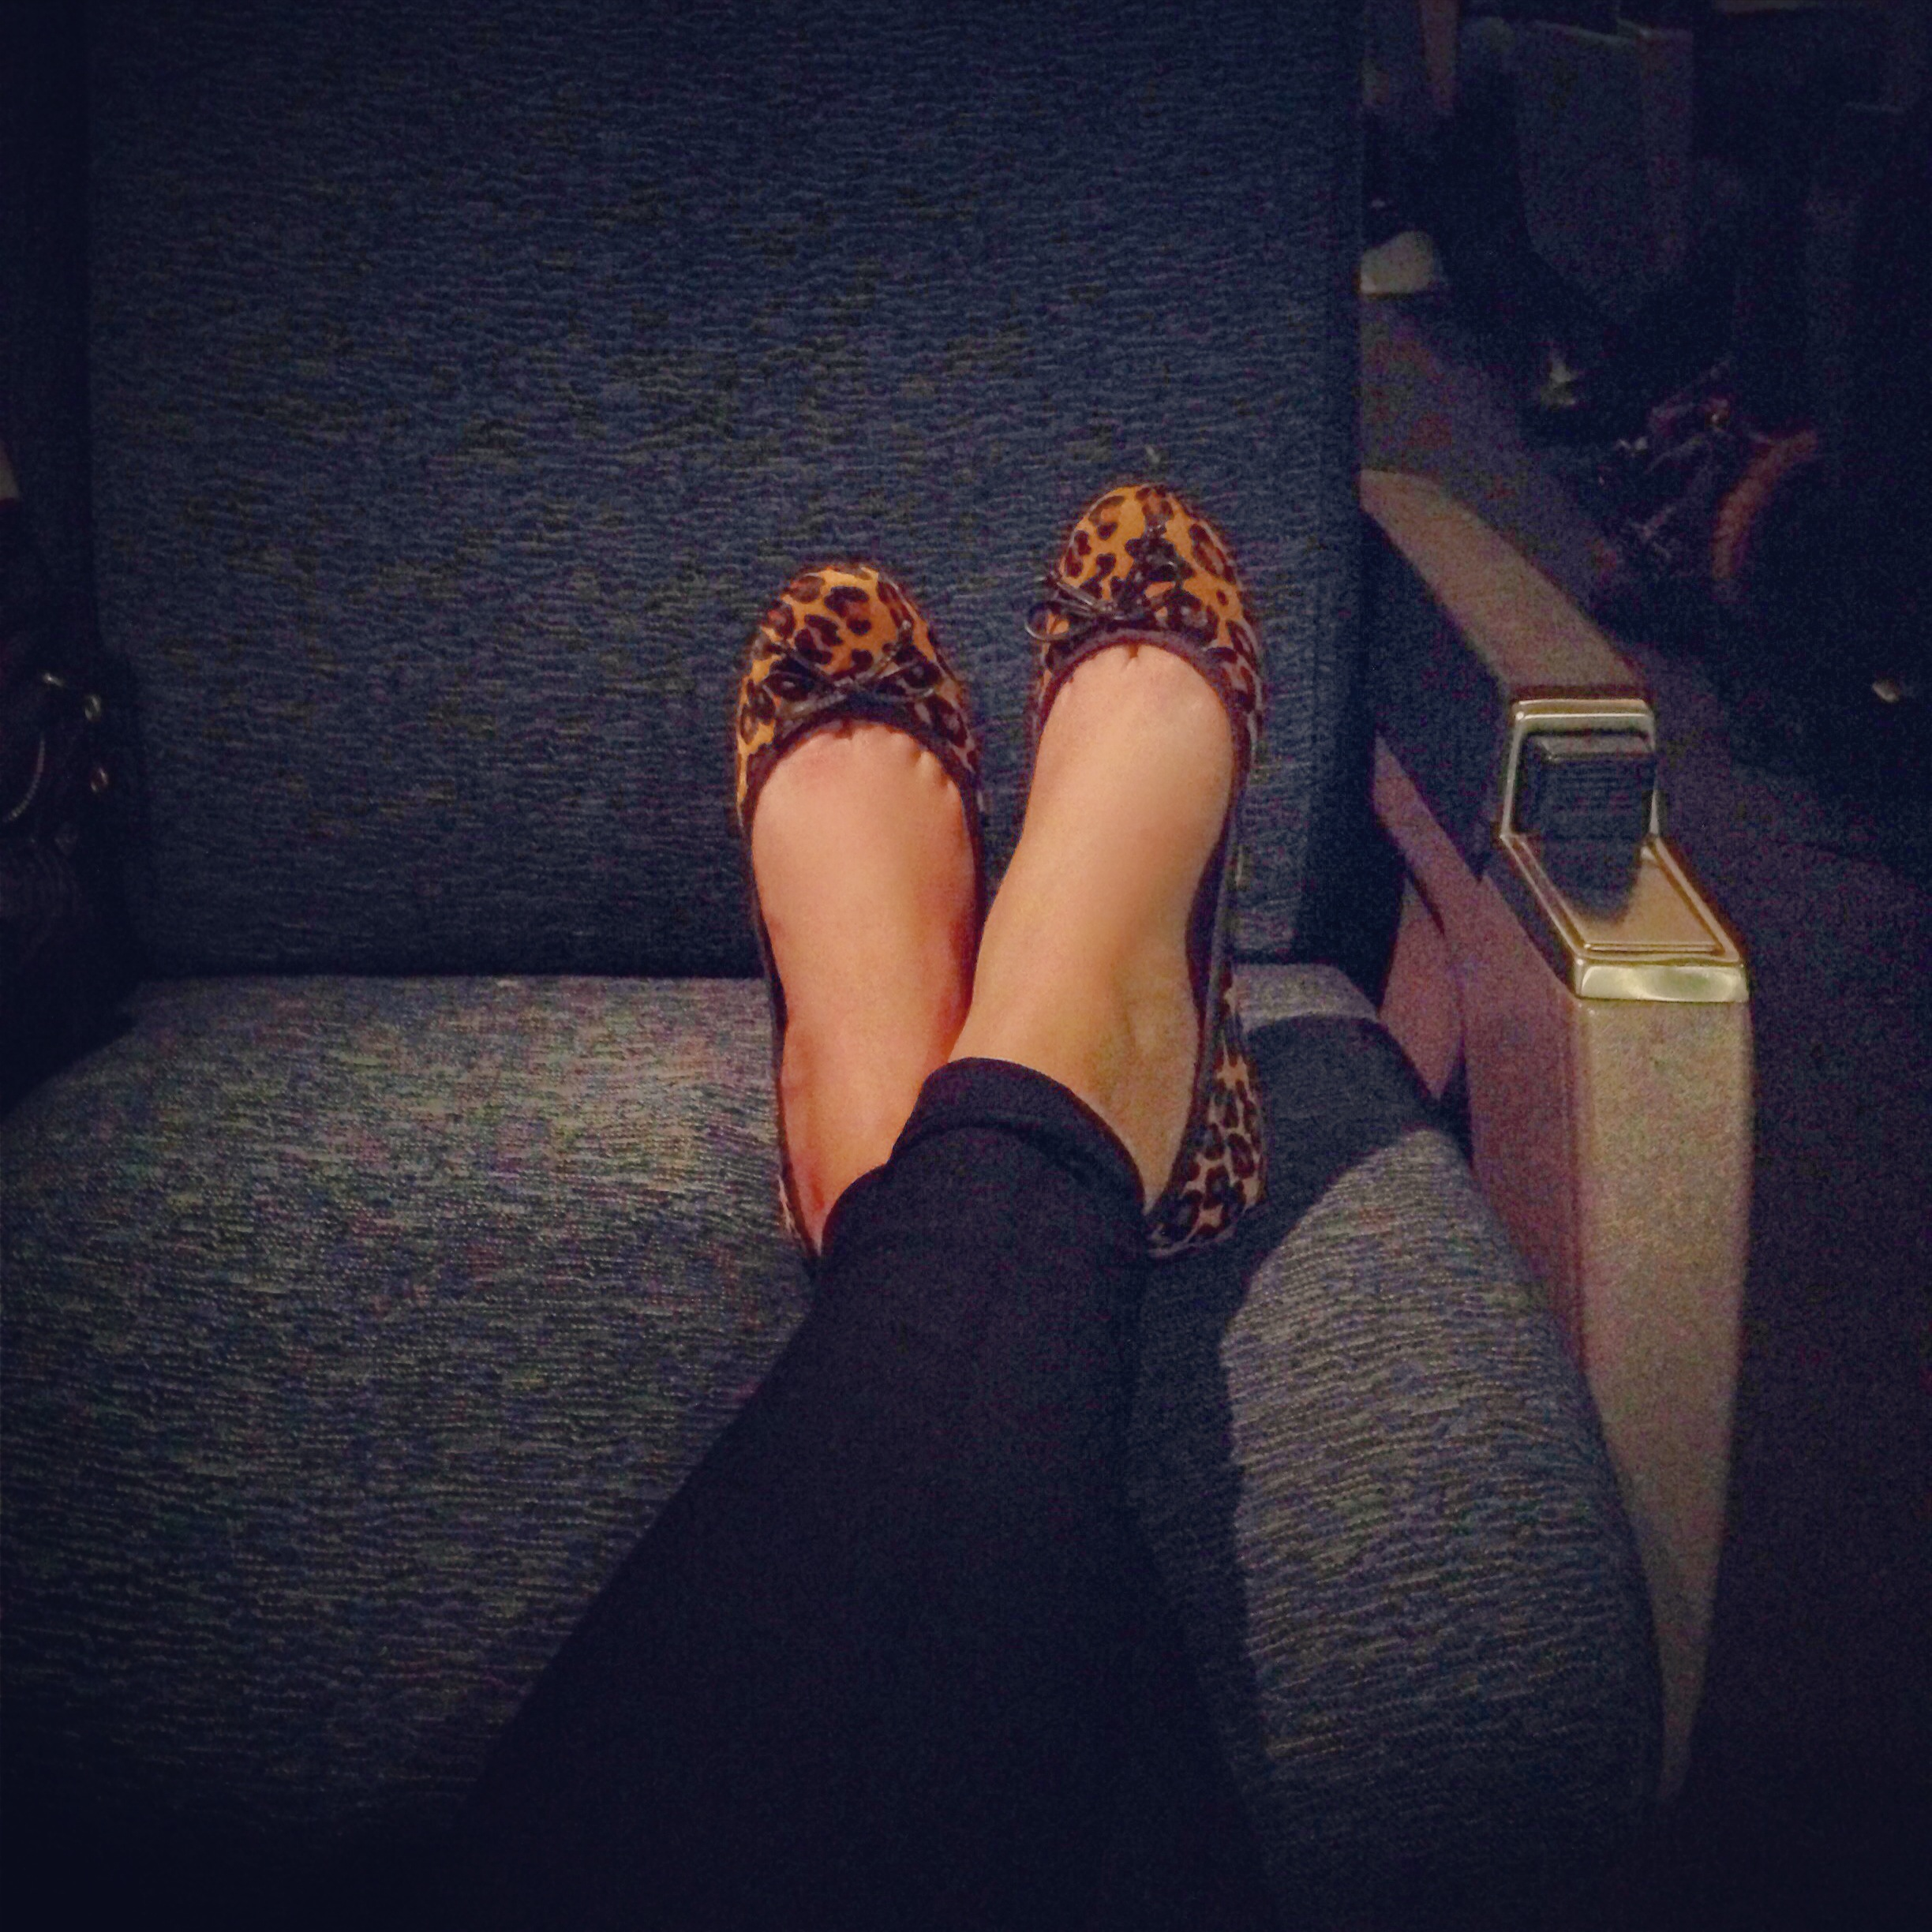 leopard shoes, riding on the train